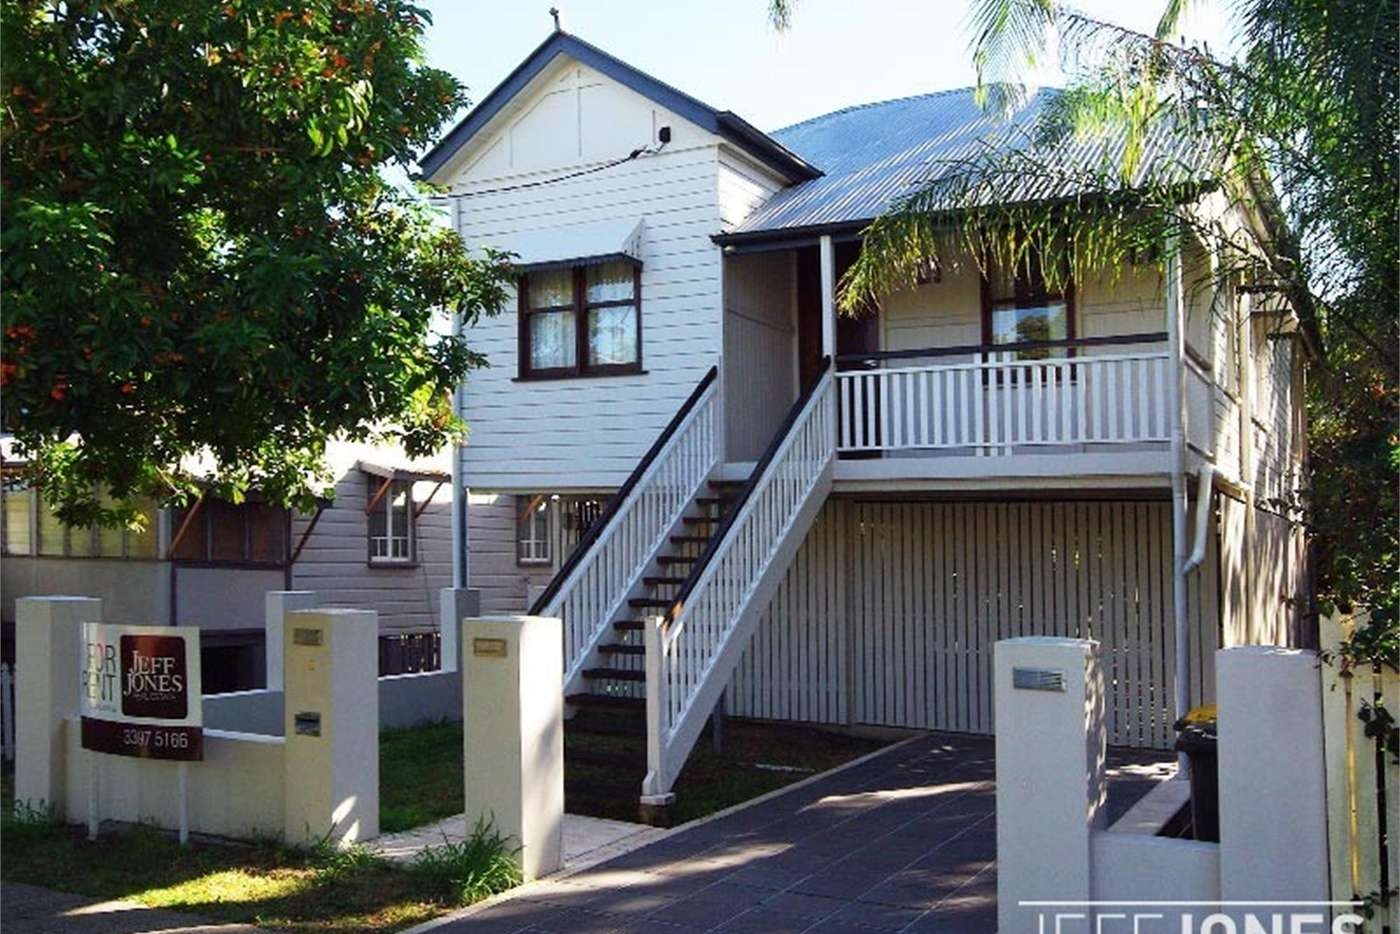 Main view of Homely house listing, 16 Maynard Street, Woolloongabba QLD 4102